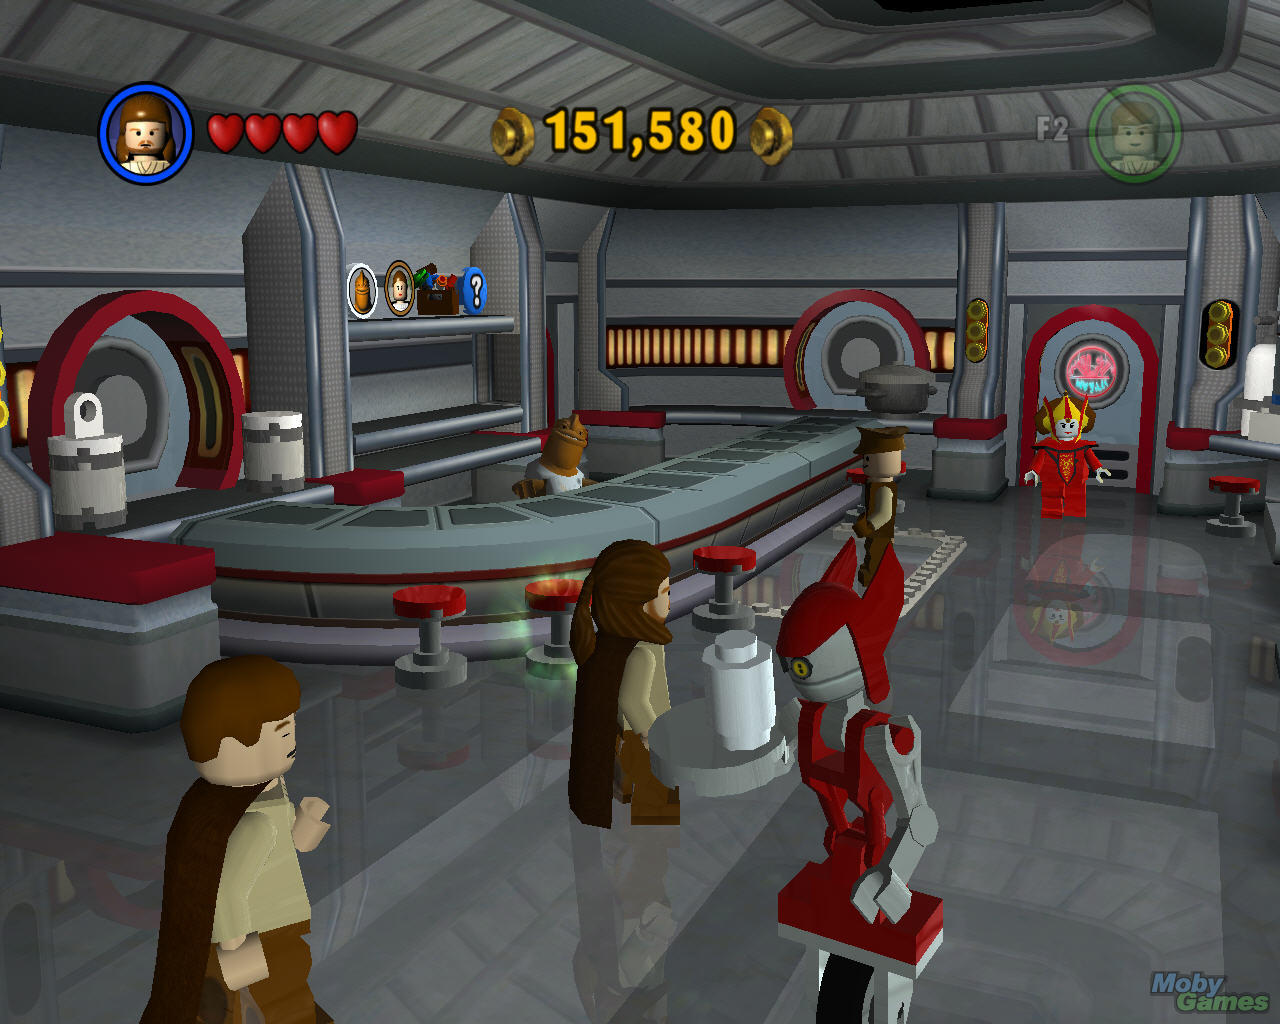 http://img2.wikia.nocookie.net/__cb20120807194256/plantsvszombies/images/5/51/108537-lego-star-wars-the-video-game-windows-screenshot-dexter-s.jpg